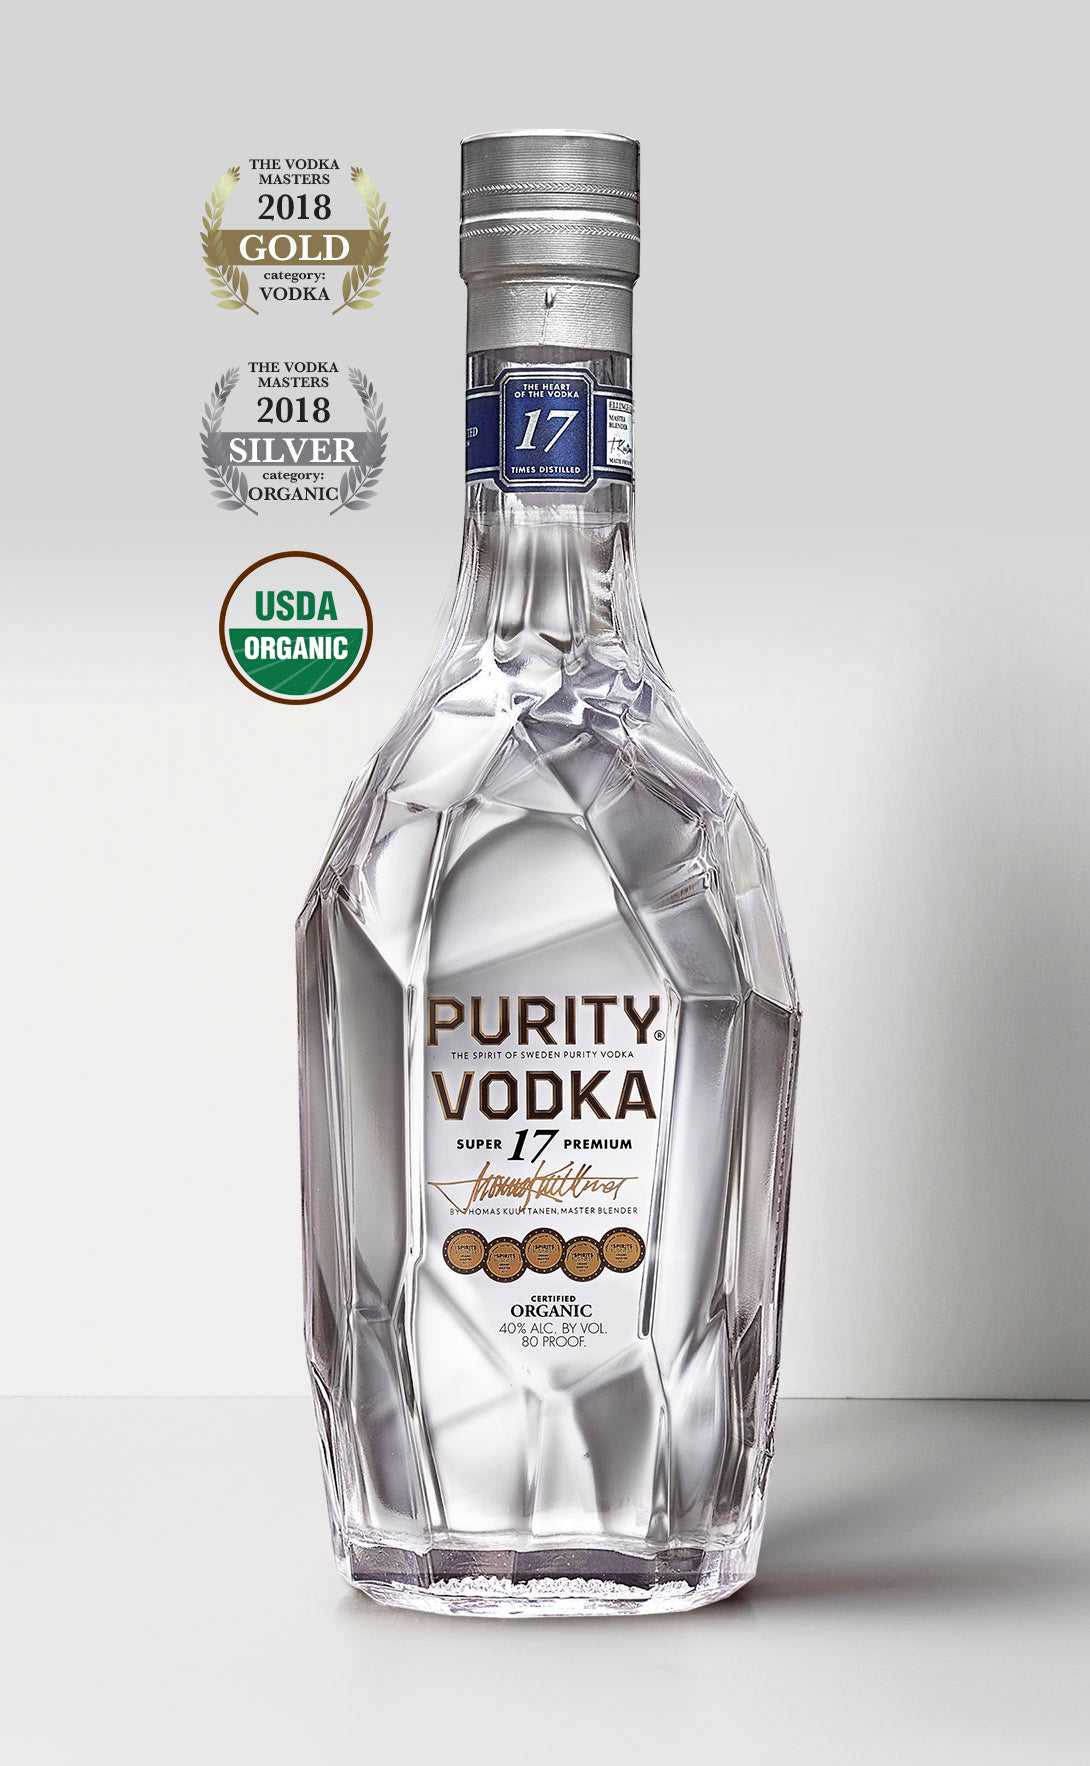 SUPER 17 PREMIUM ORGANIC VODKA